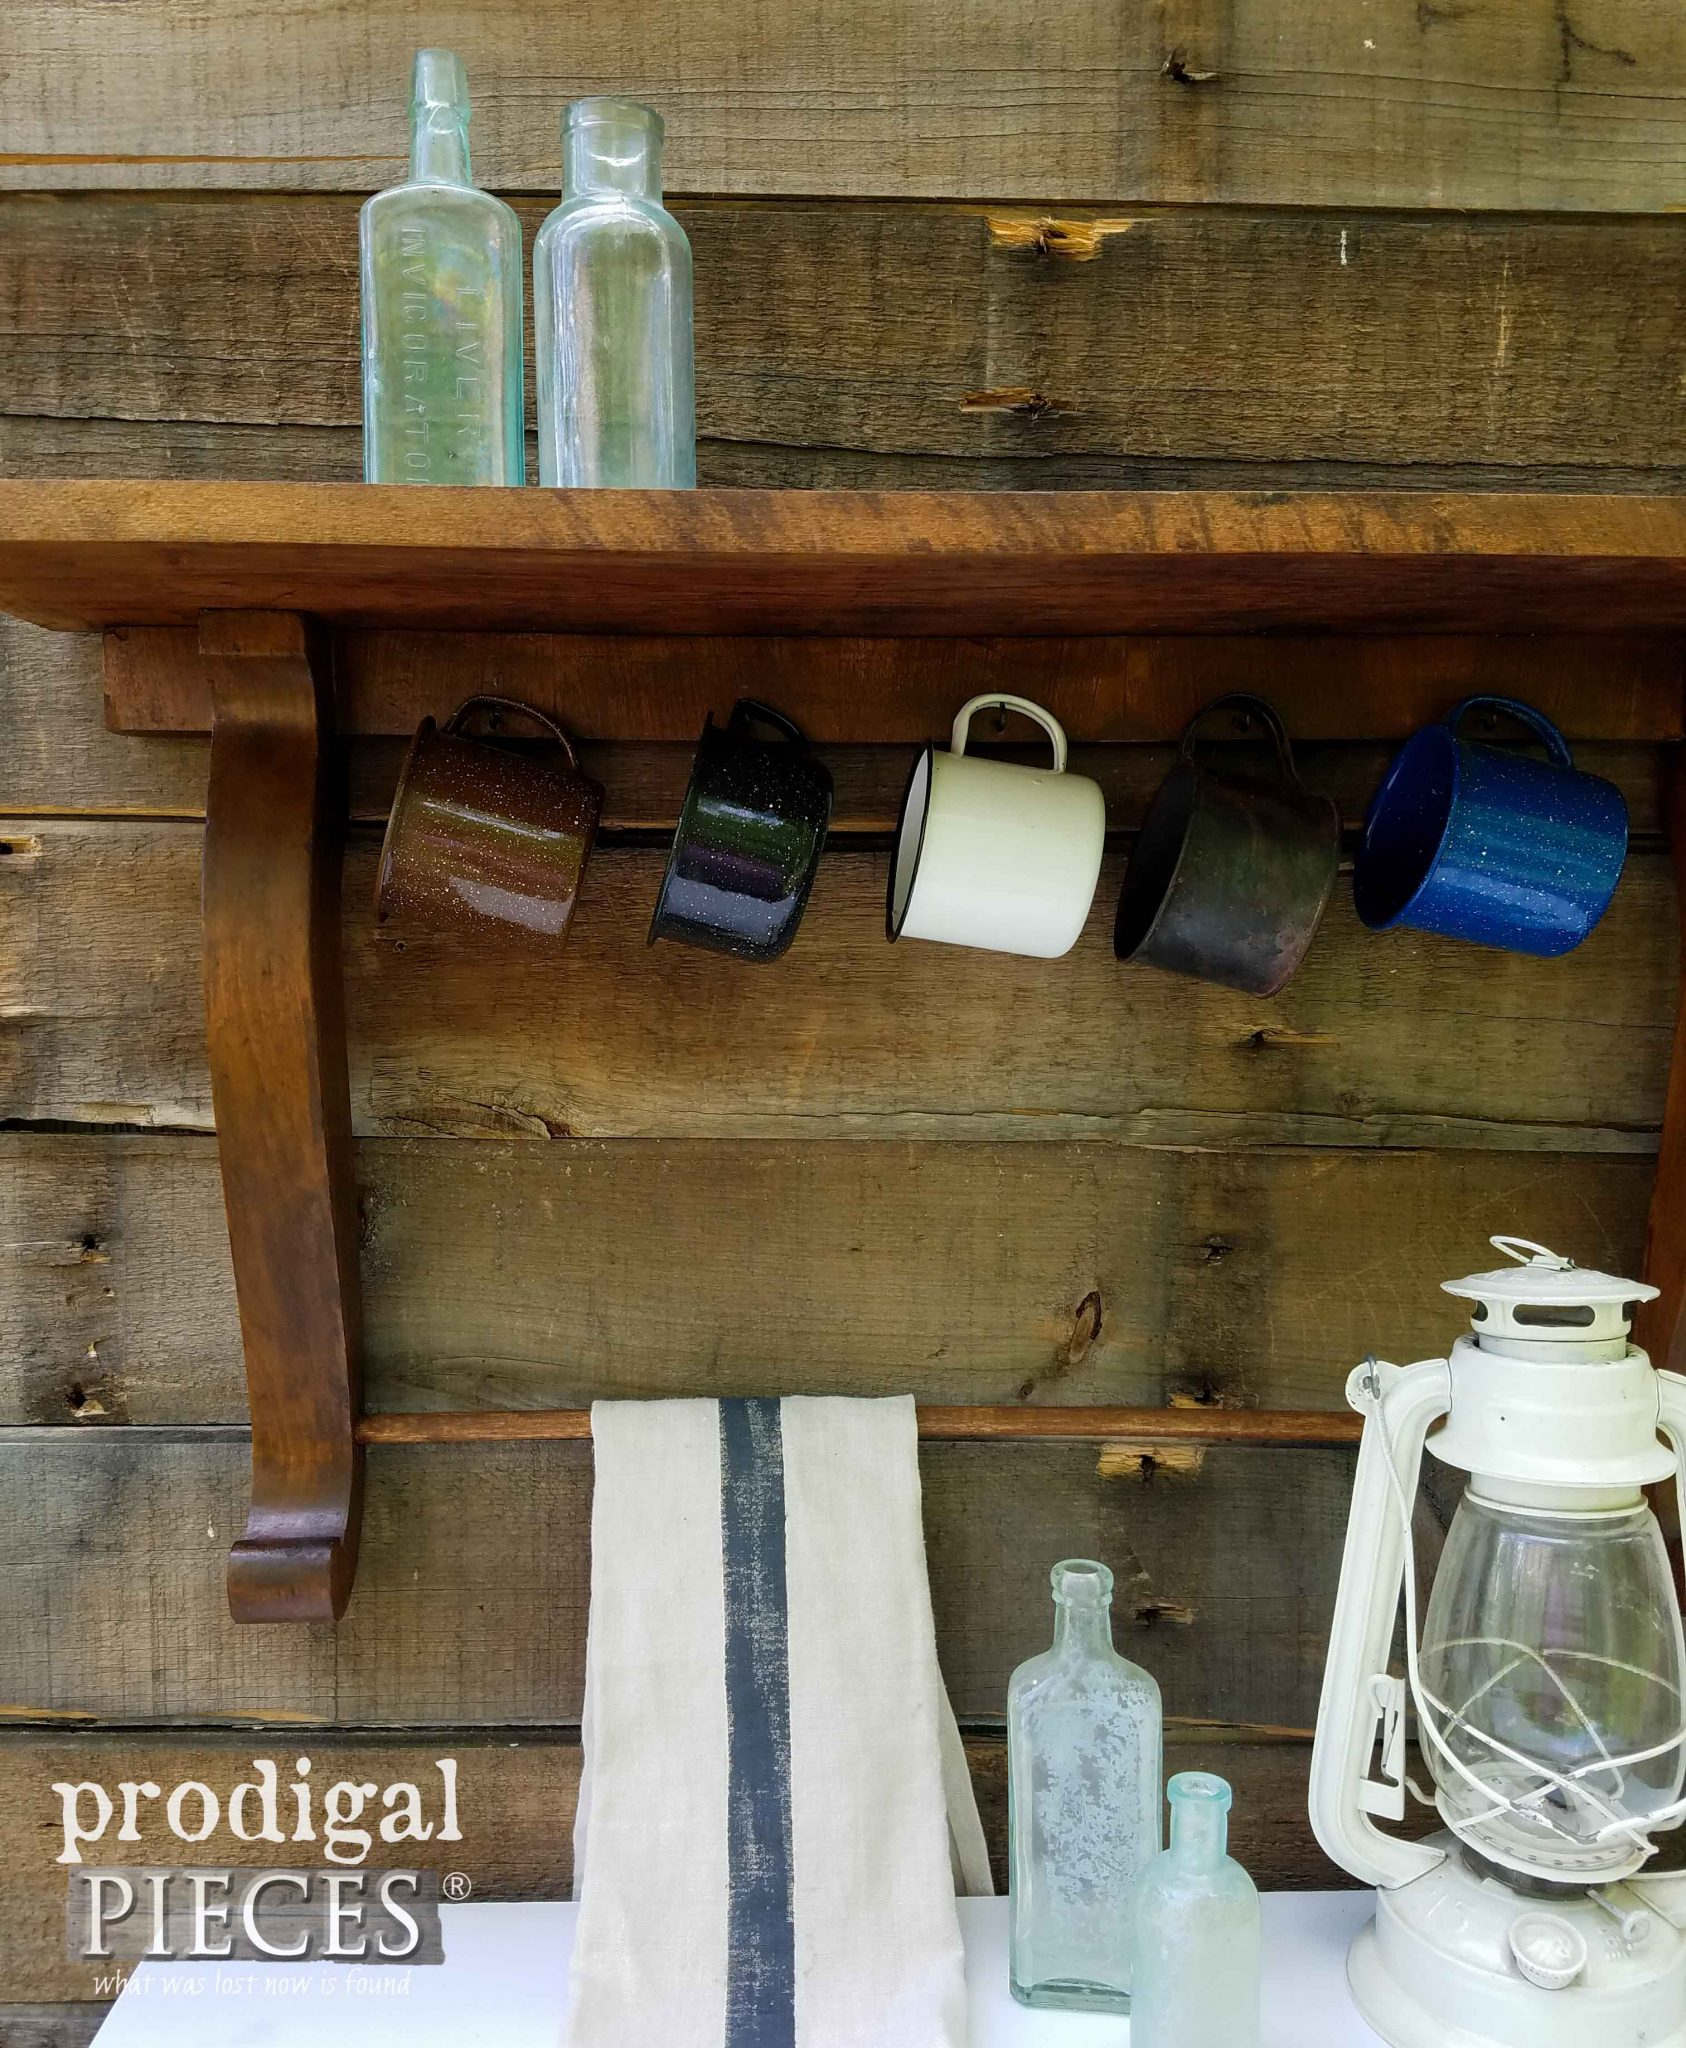 Farmhouse Vignette with Enamelware Cups on Reclaimed Shelf by Prodigal Pieces | prodigalpieces.com